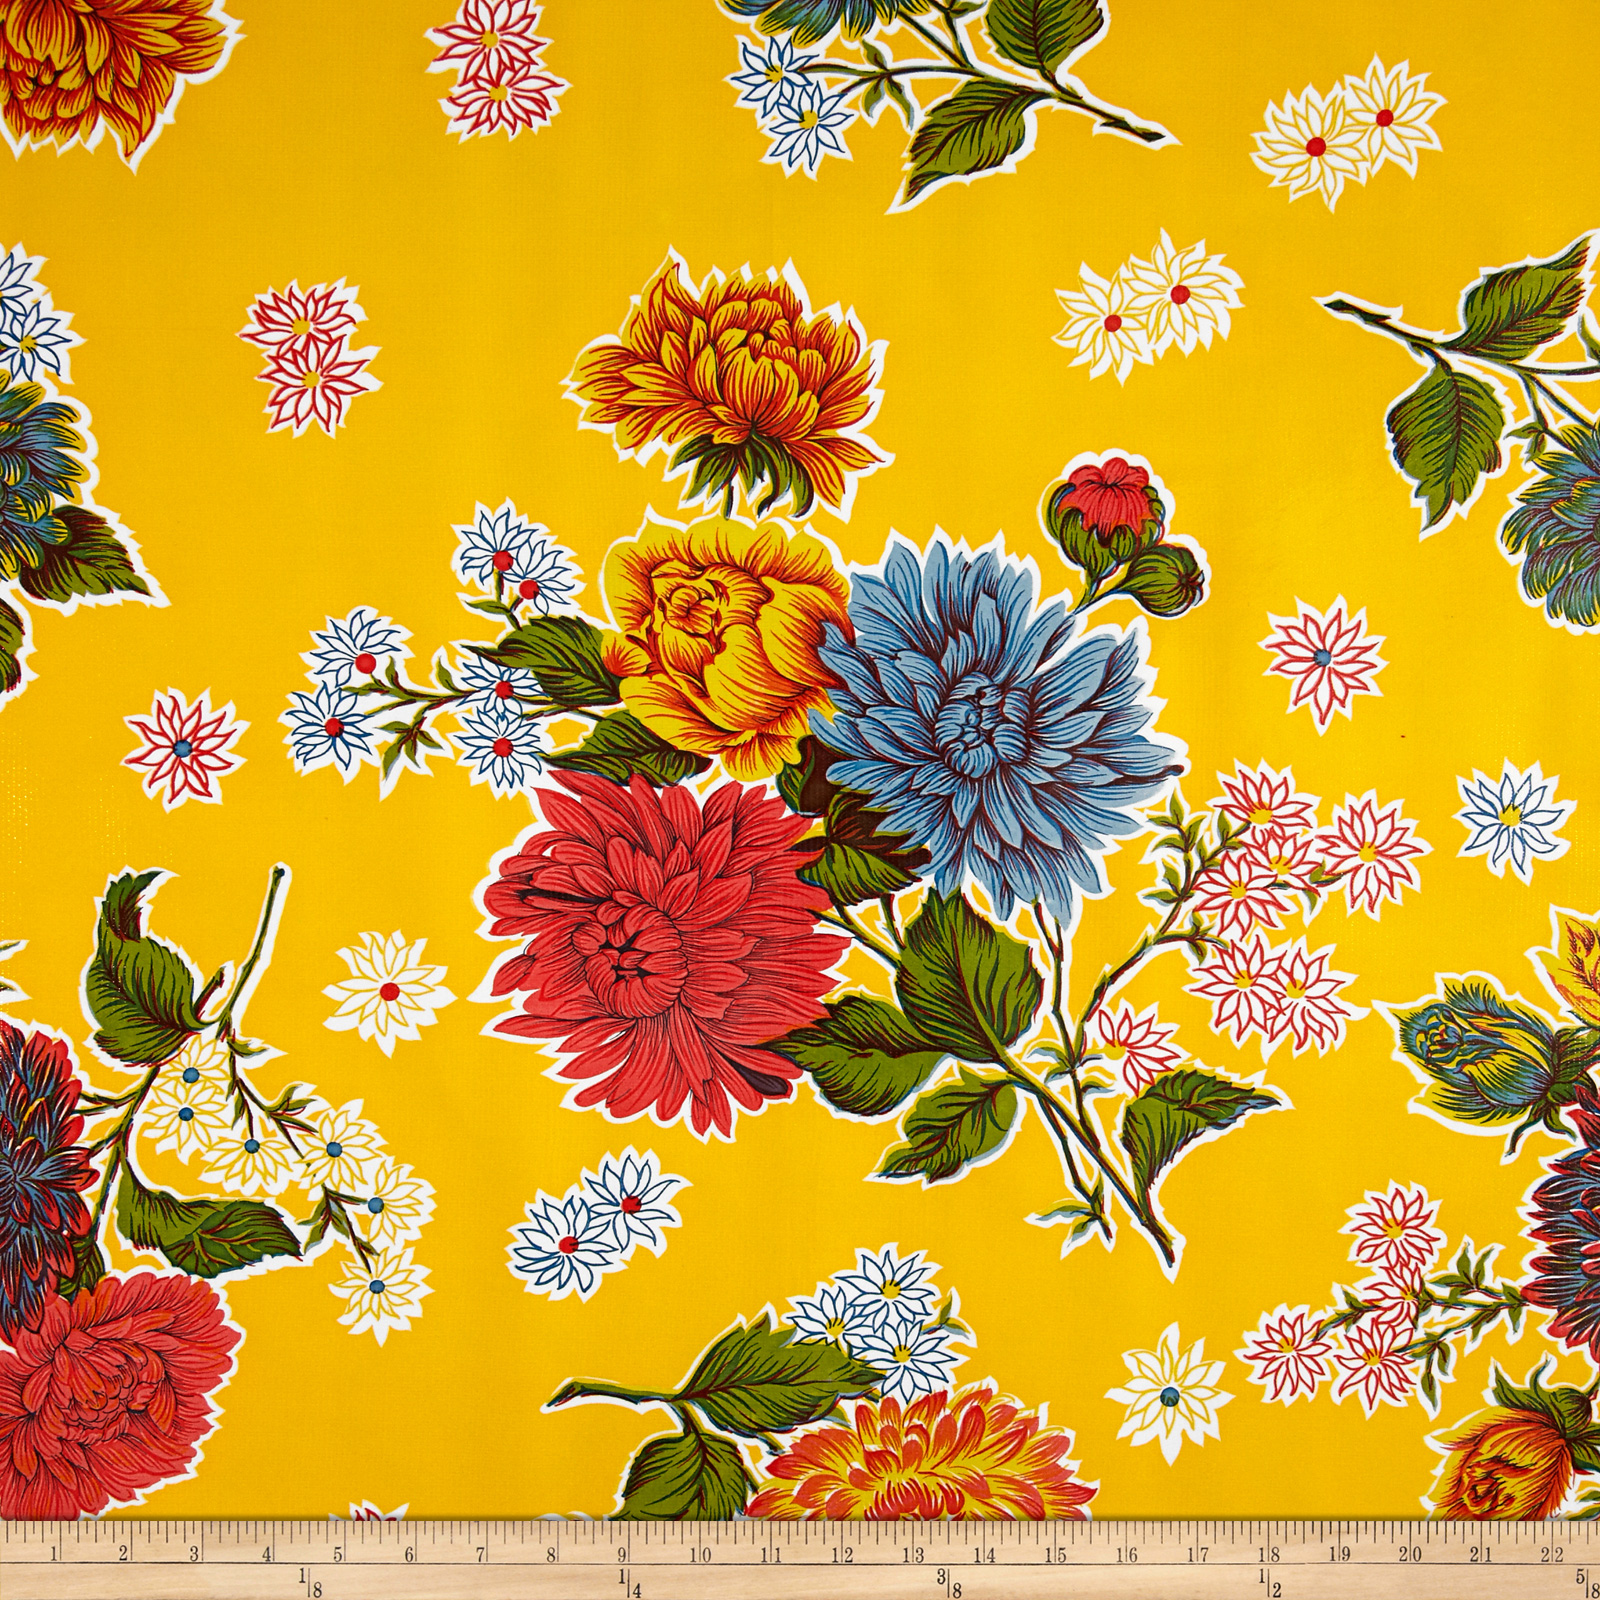 Oilcloth Mums Yellow Fabric by Oilcloth International in USA